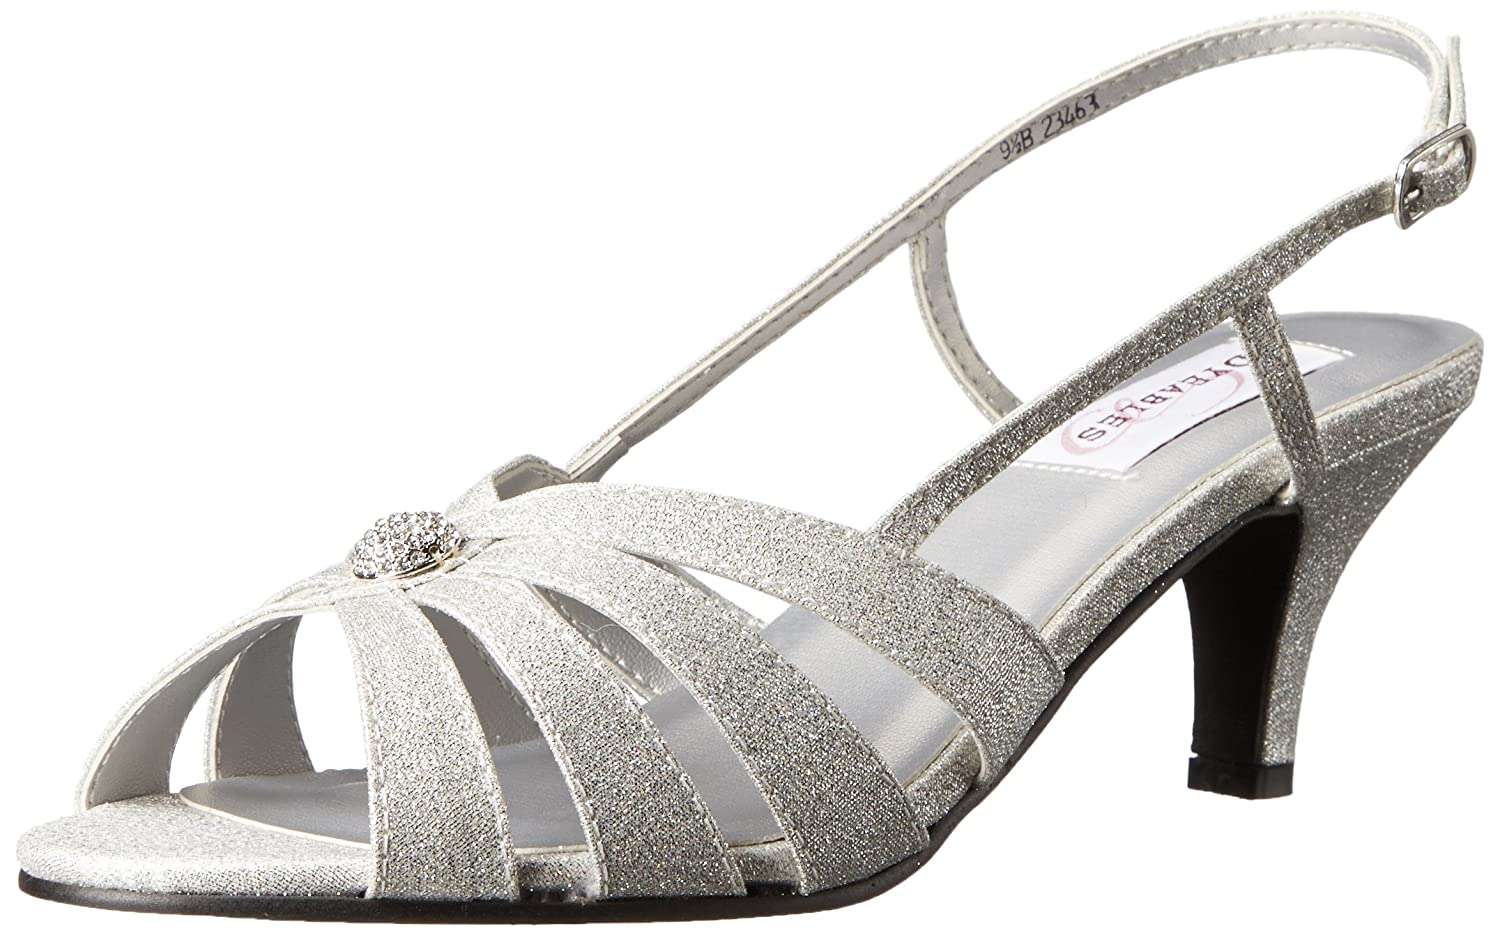 Dyeables, Inc Womens Fiona Dress Sandal B00ZWNBCYS 7.5 W US|Silver Sparkle